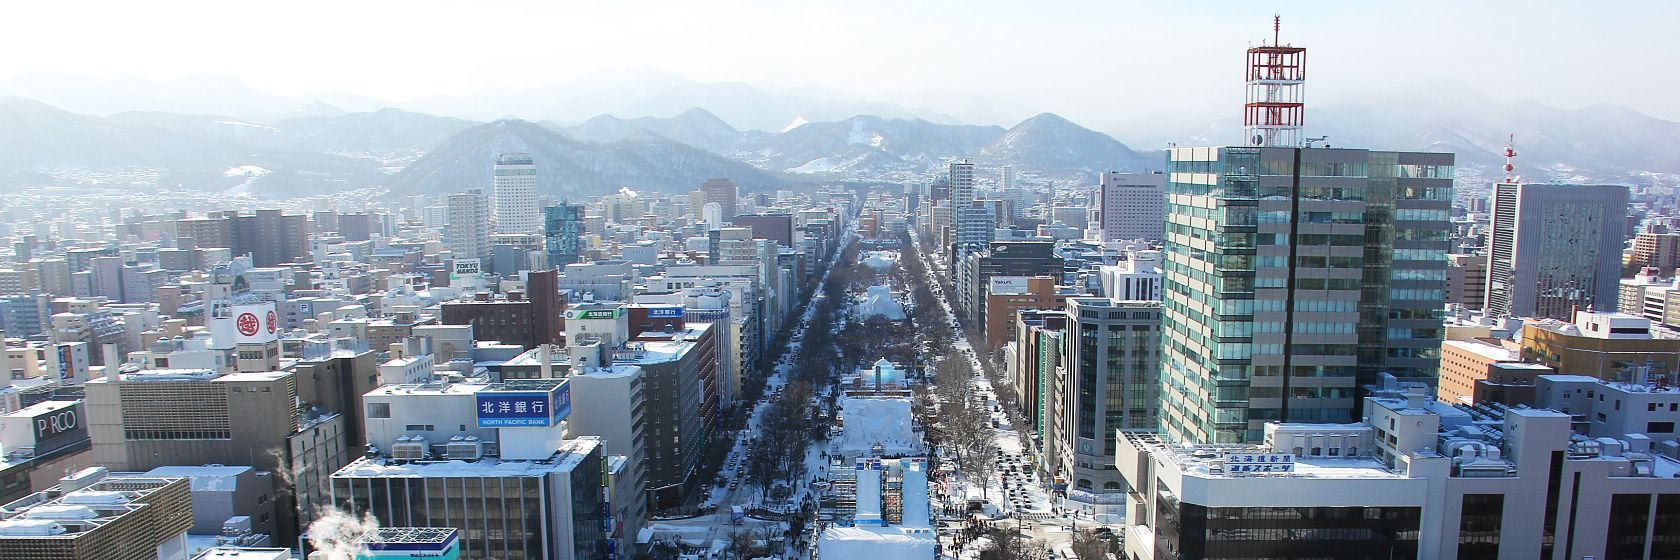 Sapporo Travel Guide - What to see and do in Sapporo